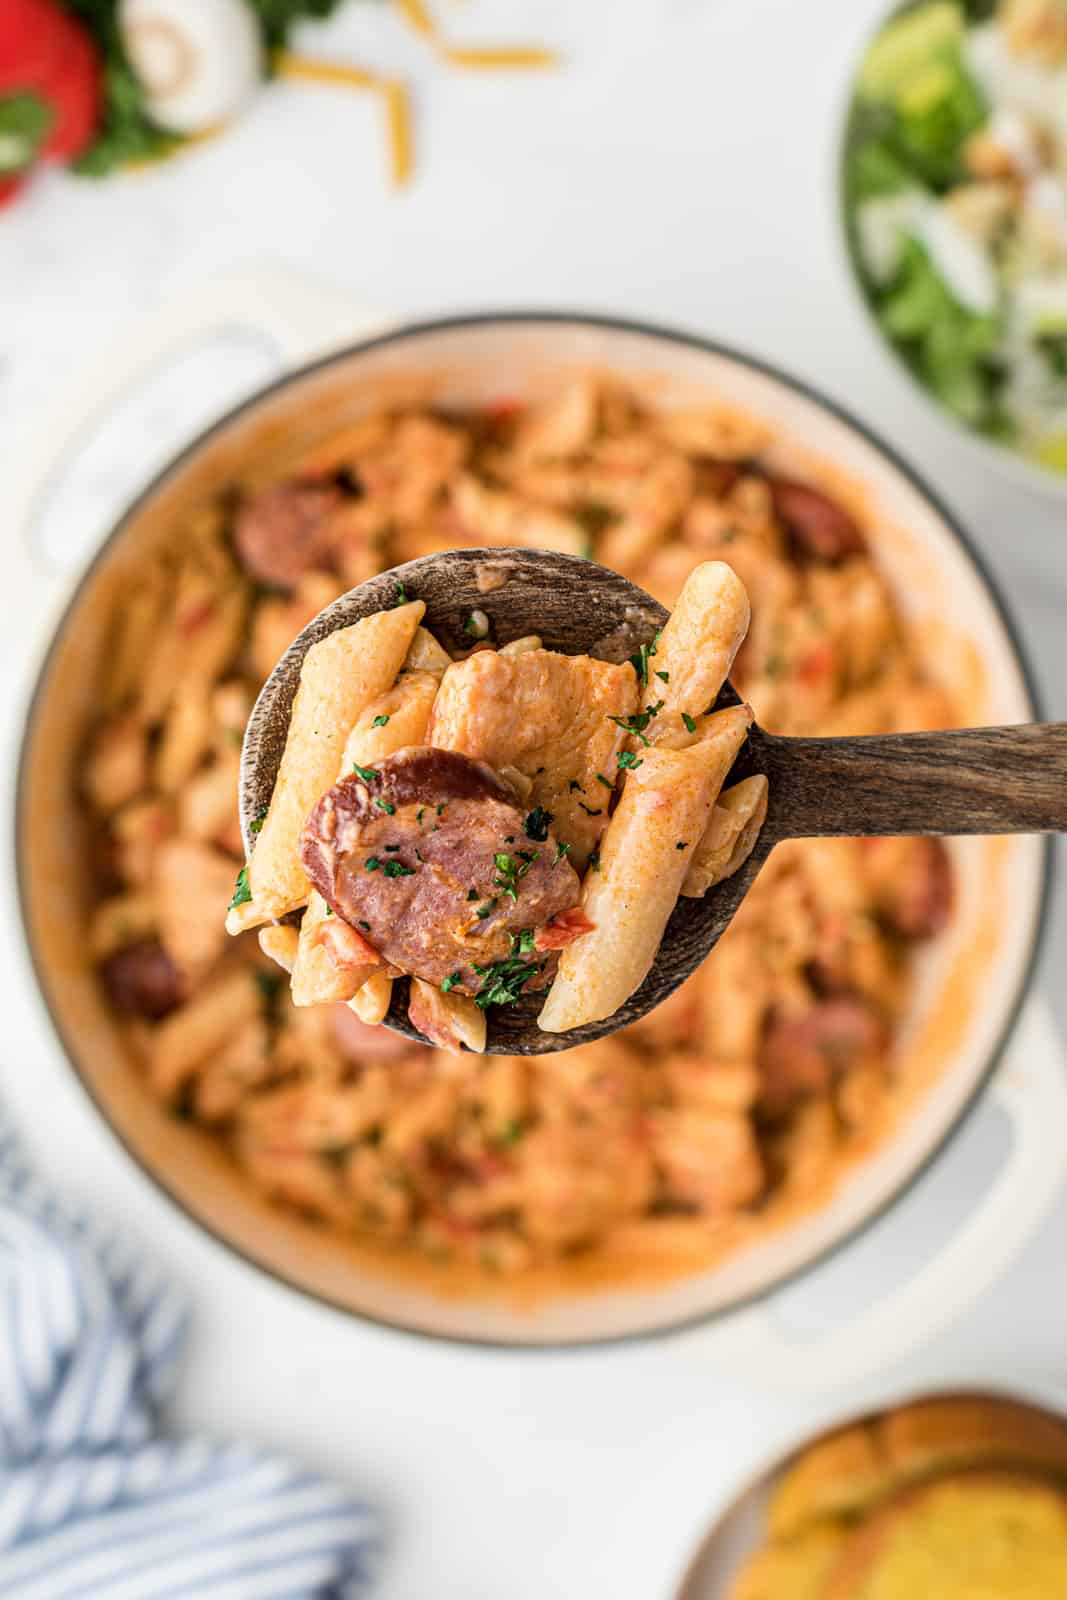 Wooden spoon holding up some Cajun Pasta